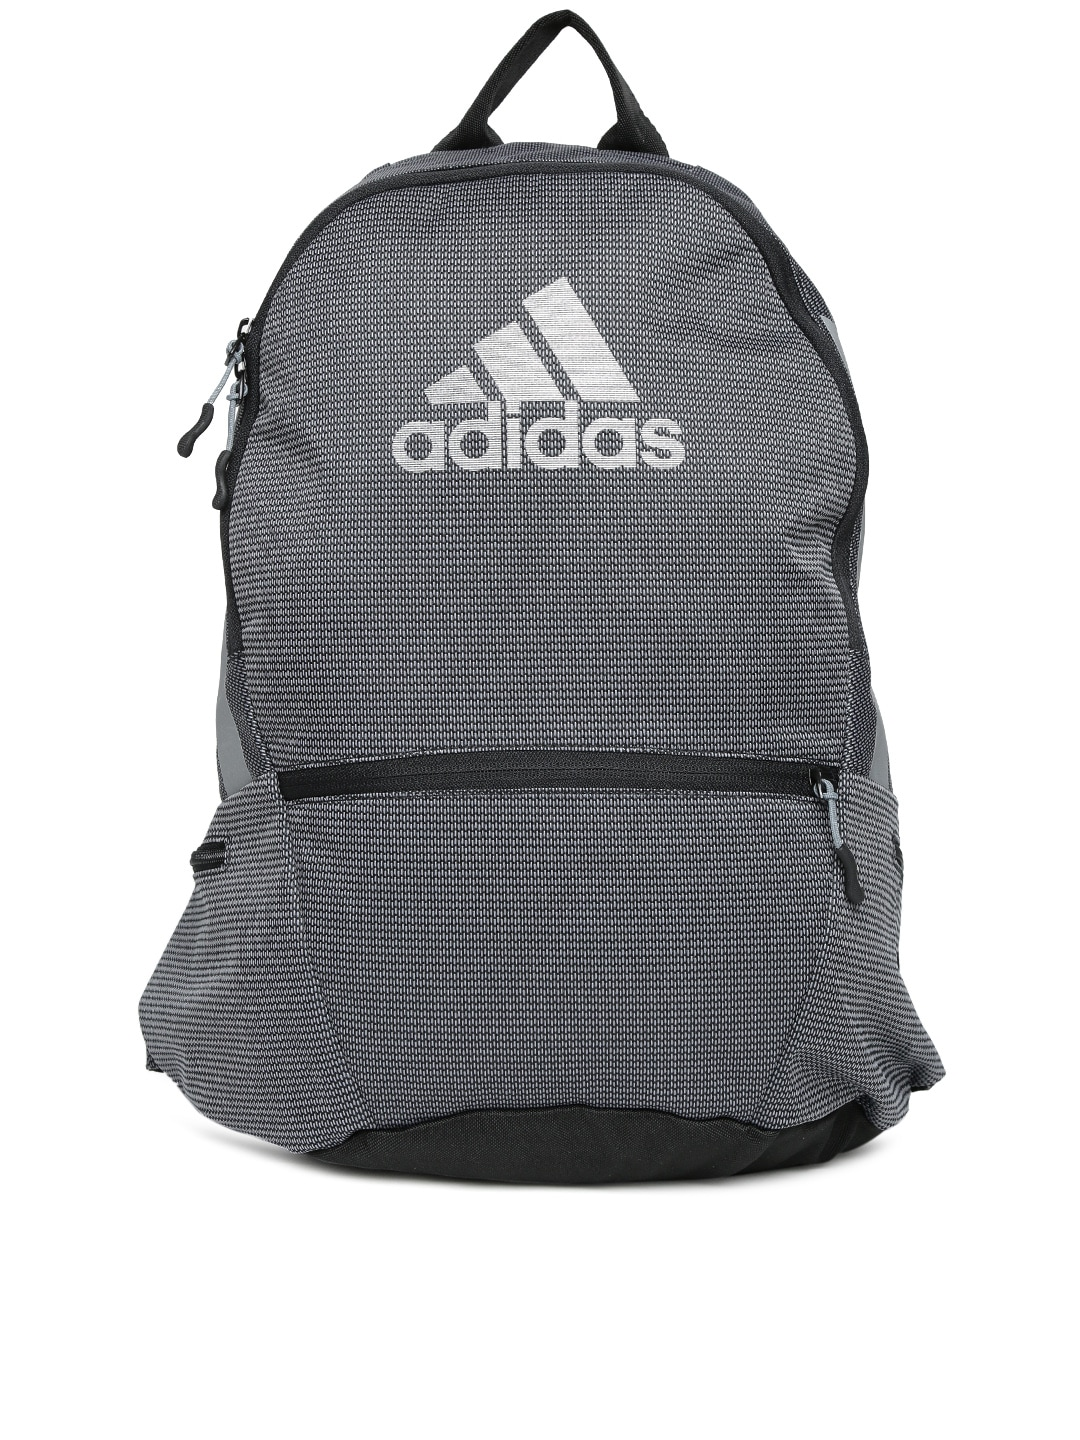 7b8ab5d7bf Adidas s94447 Originals Unisex Grey Run Nga Backpack - Best Price ...